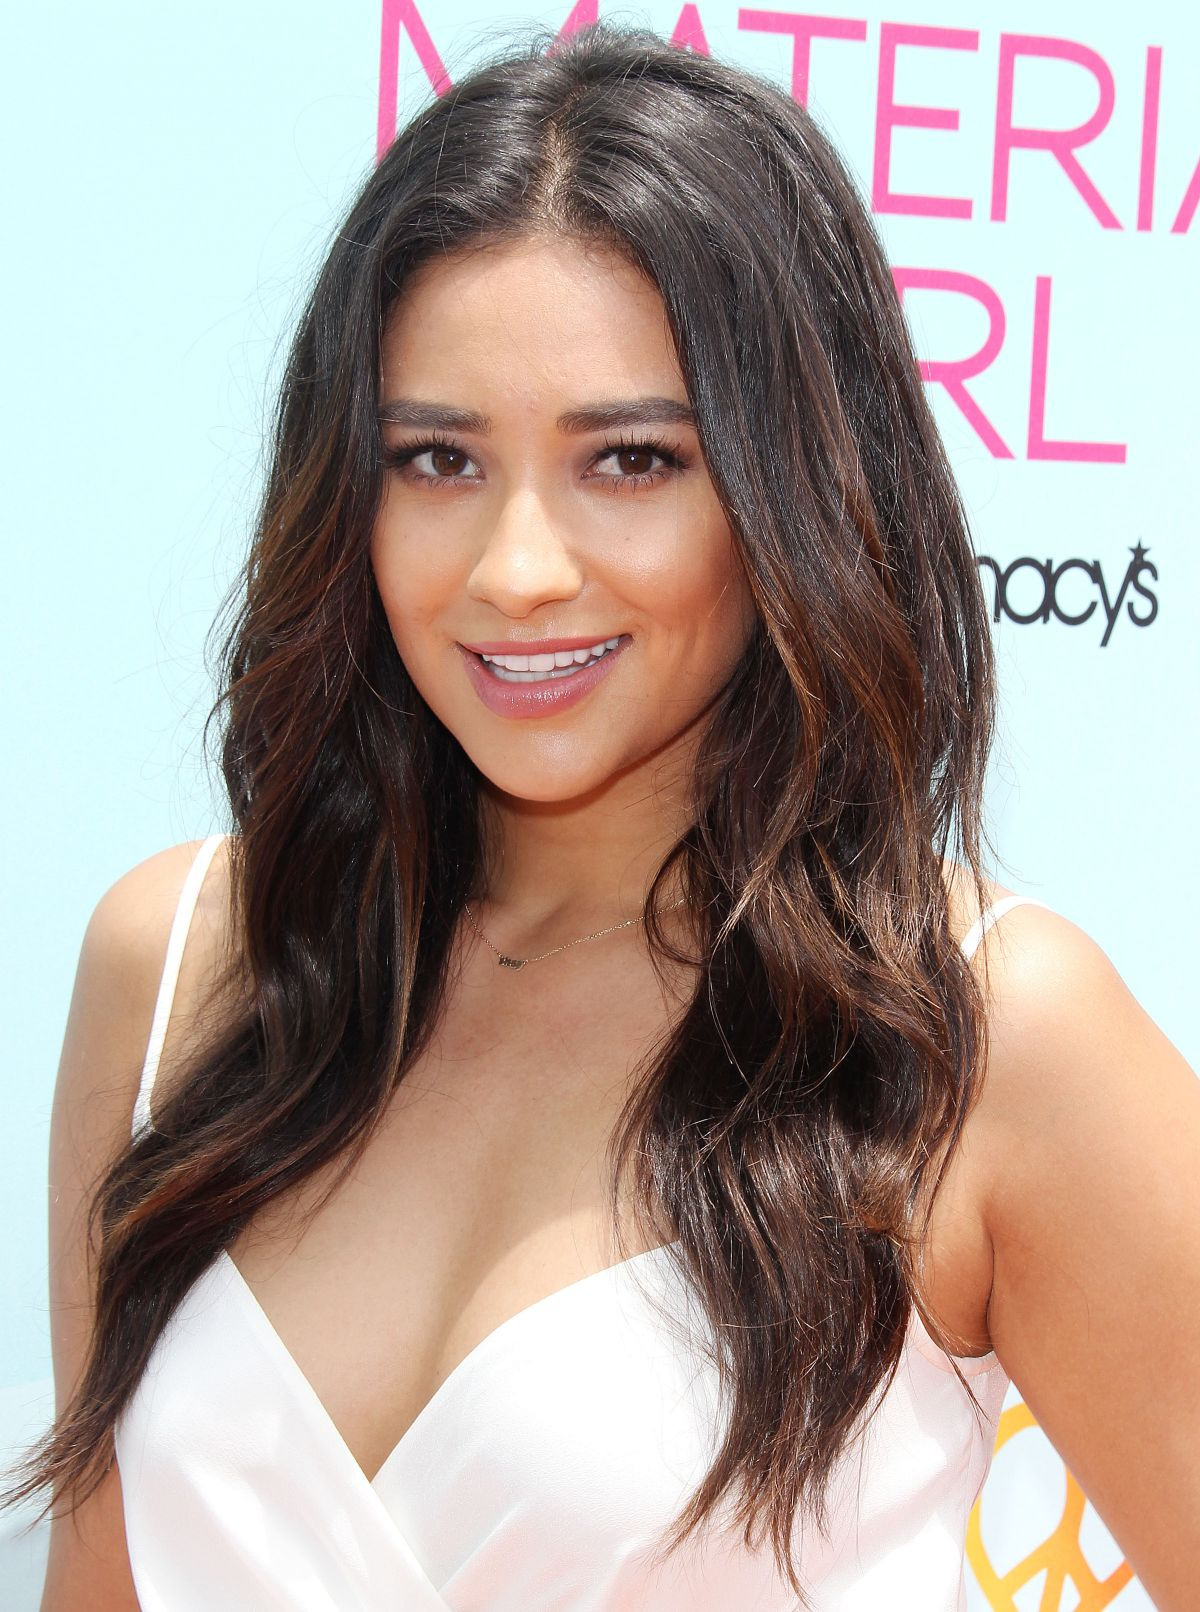 SHAY MITCHELL at Children Mending Hearts Empathy Rocks Fundraiser in Malibu